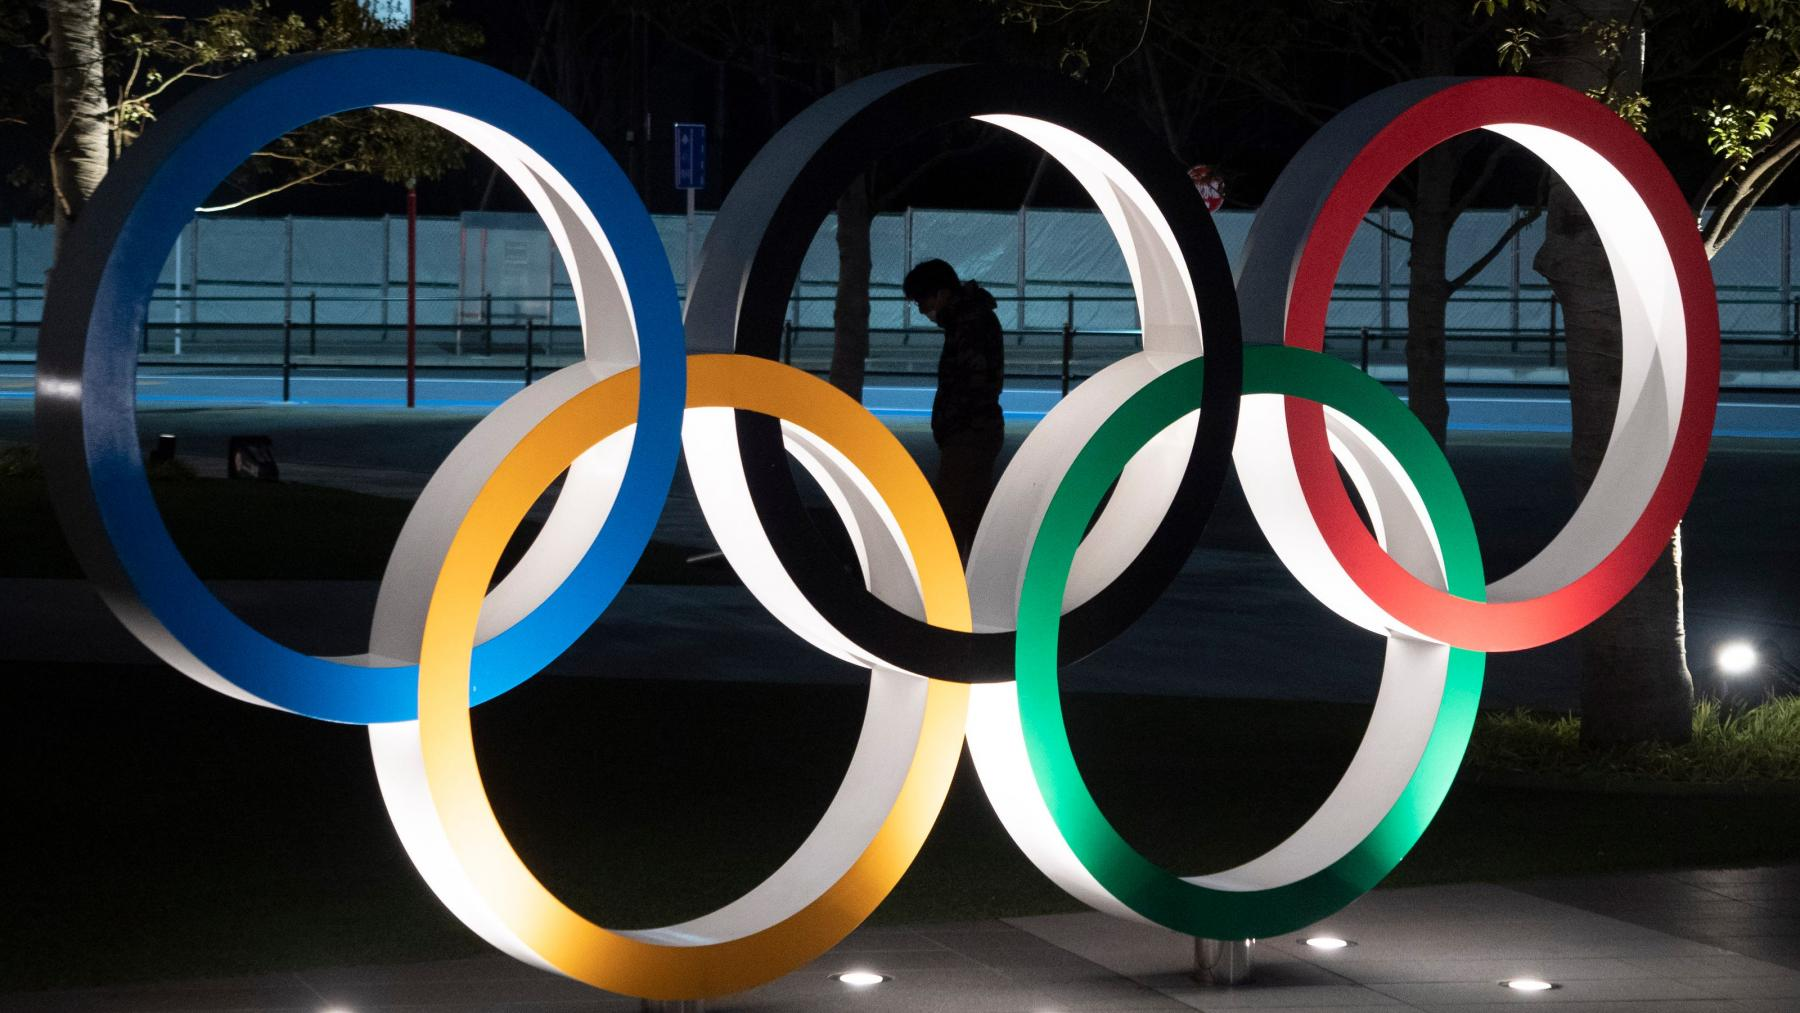 Tokyo Olympic games which where cancelled in 2020 due to Coronavirus hopefully will take place in summer, 2021